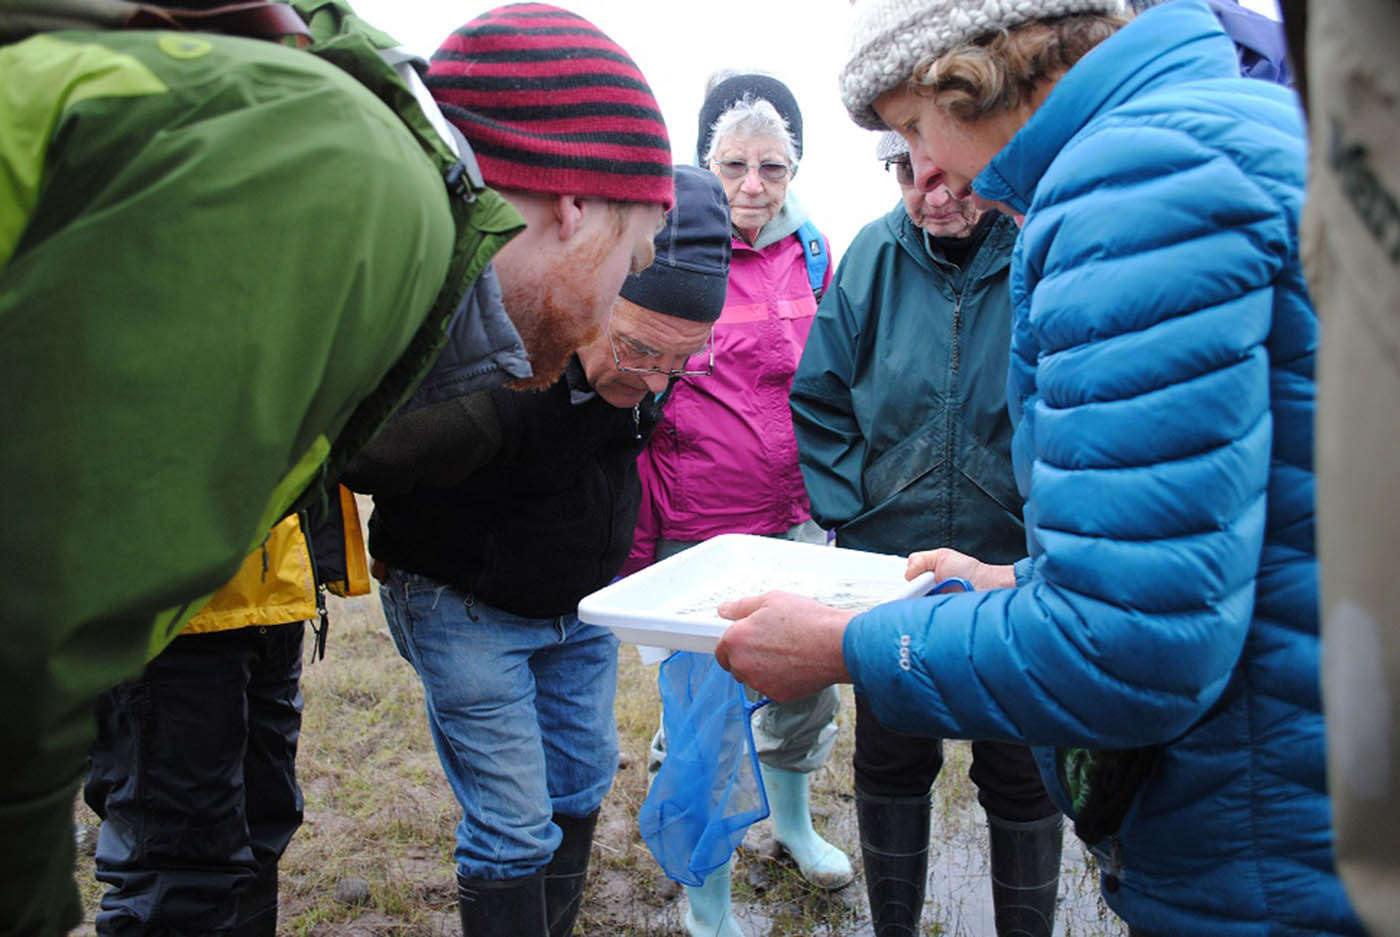 Molly Morison (on right) gathers volunteers to examine a water sample from a seasonal pool.